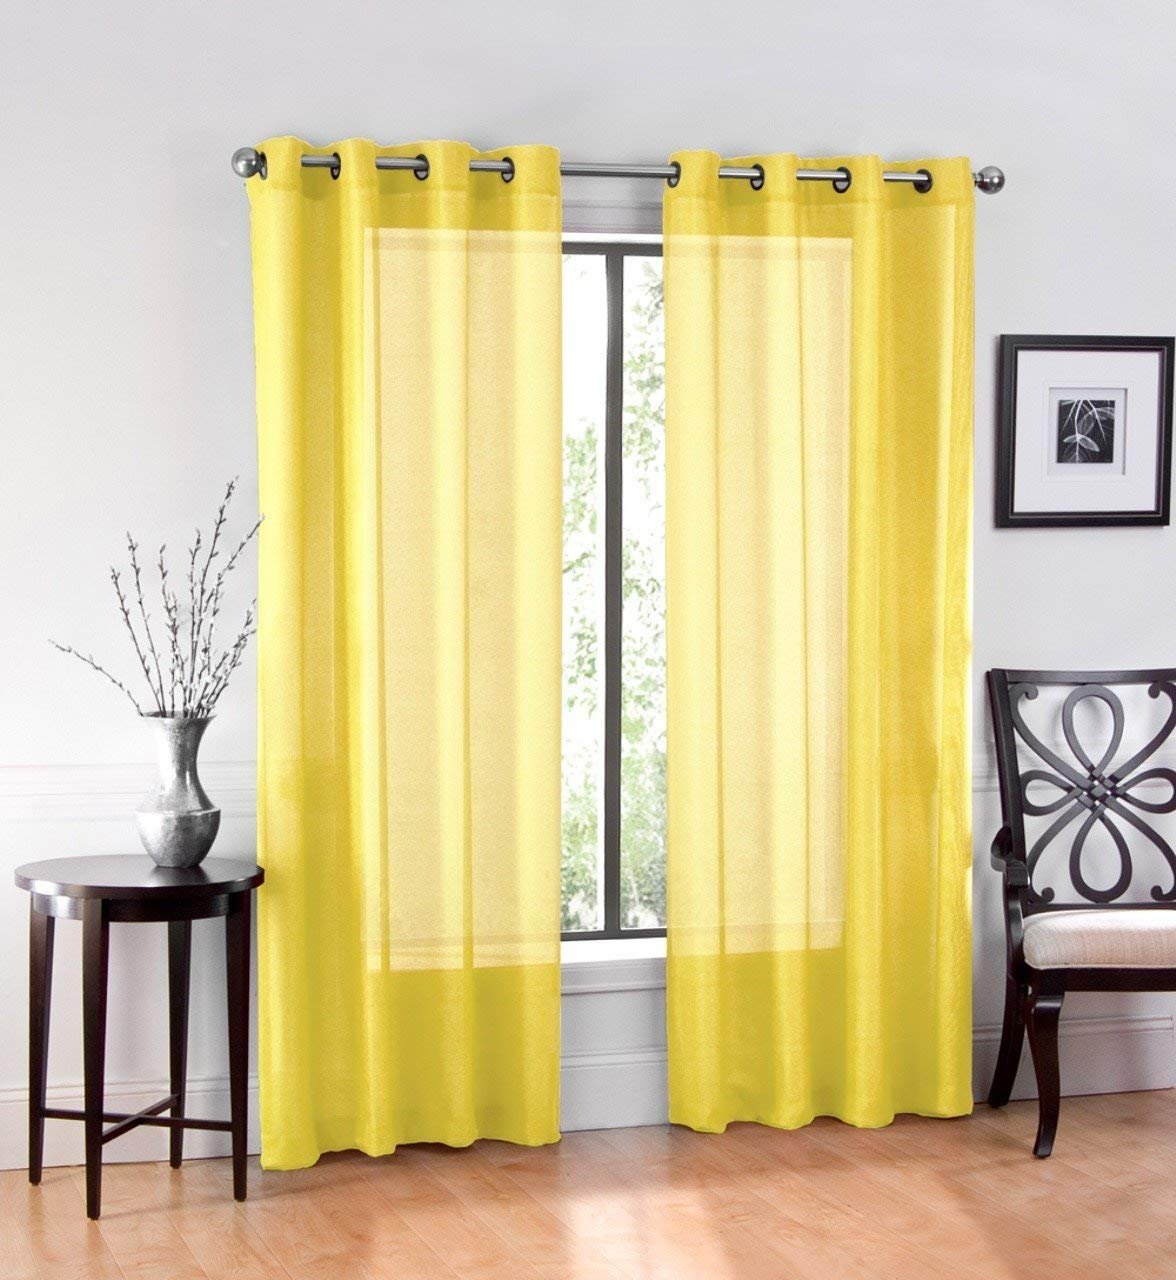 Ruthy S Textile 2 Piece Window Sheer Curtains Grommet Panels 54 X 108 Total 108 X 108 Inch Length For Kitchen Bedroom Living Room Color Yellow Walmart Com Walmart Com